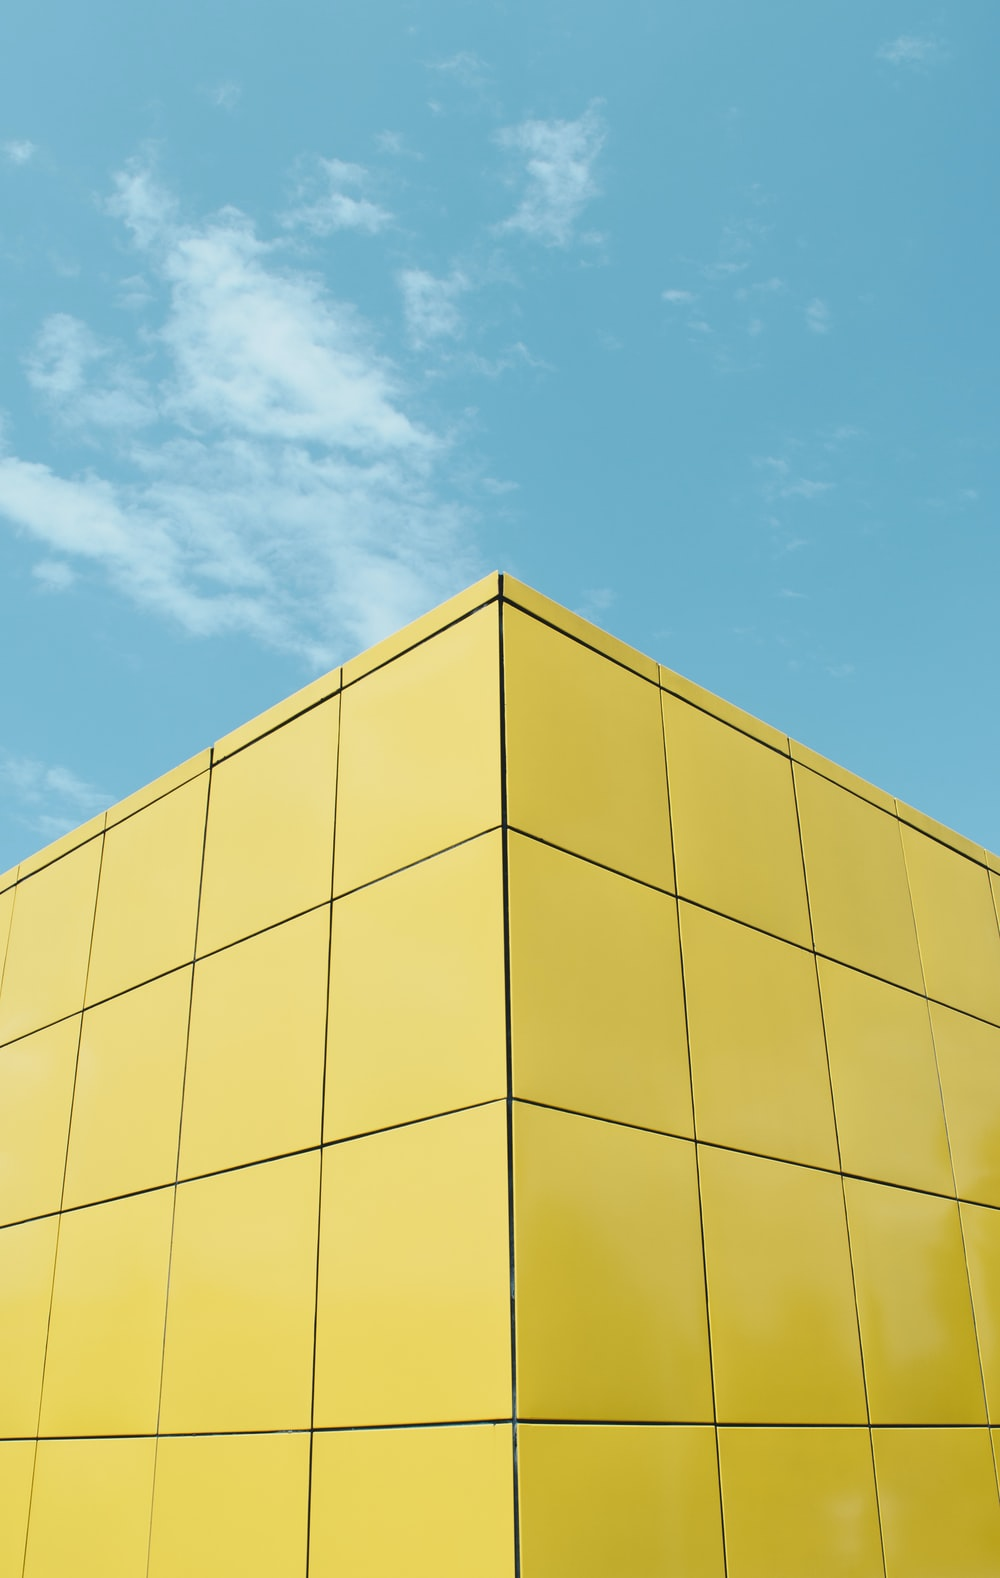 yellow building under blue sky during daytime